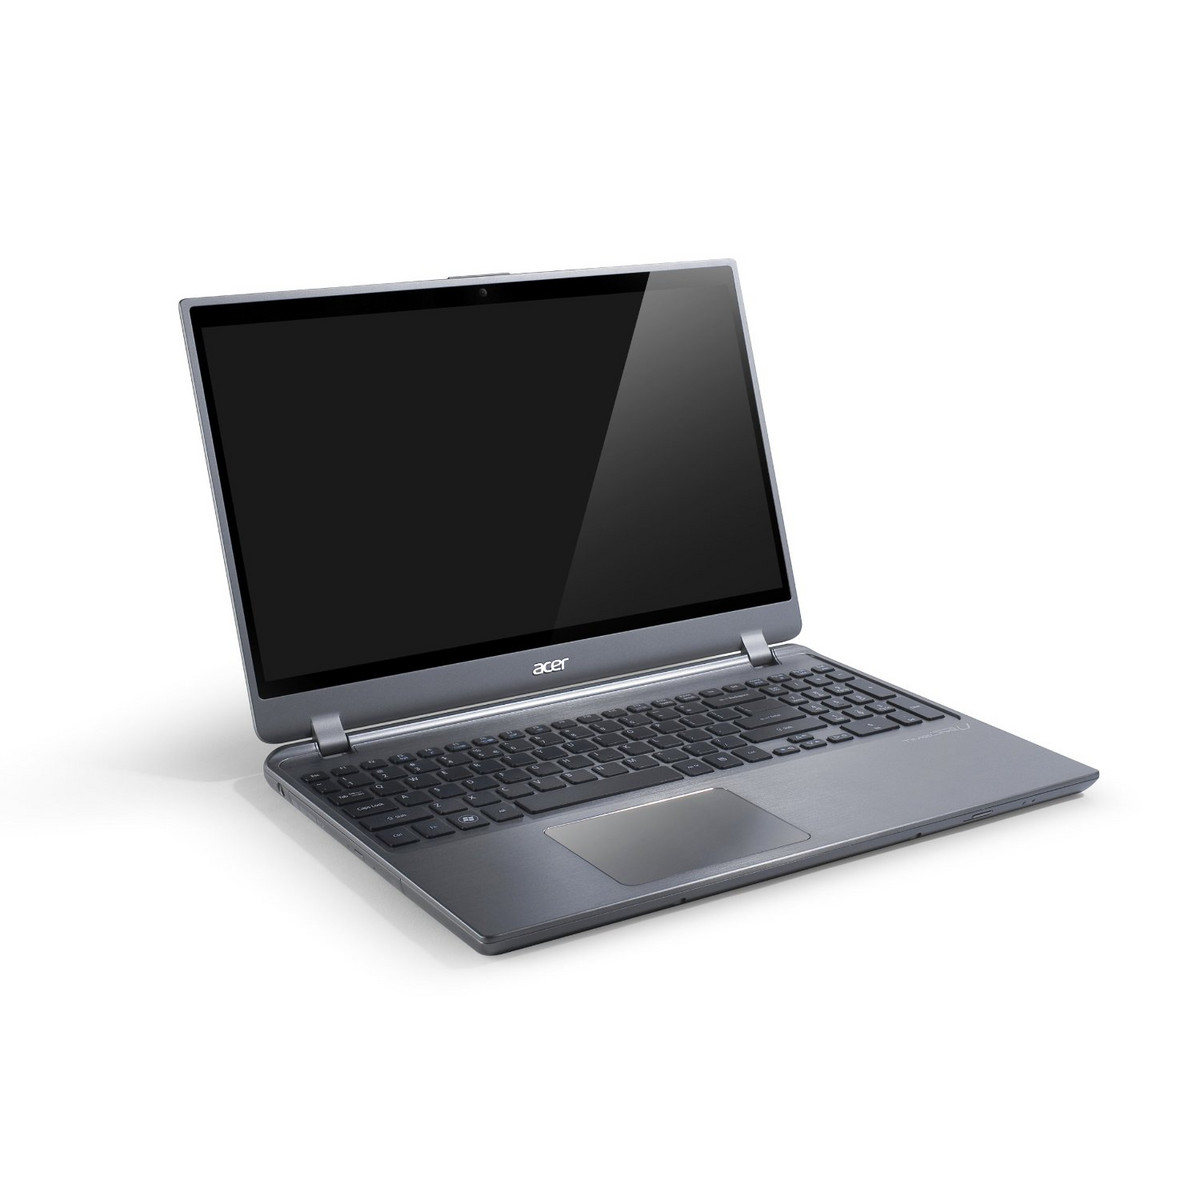 ACER ASPIRE M5-481TG LAPTOP DRIVERS FOR MAC